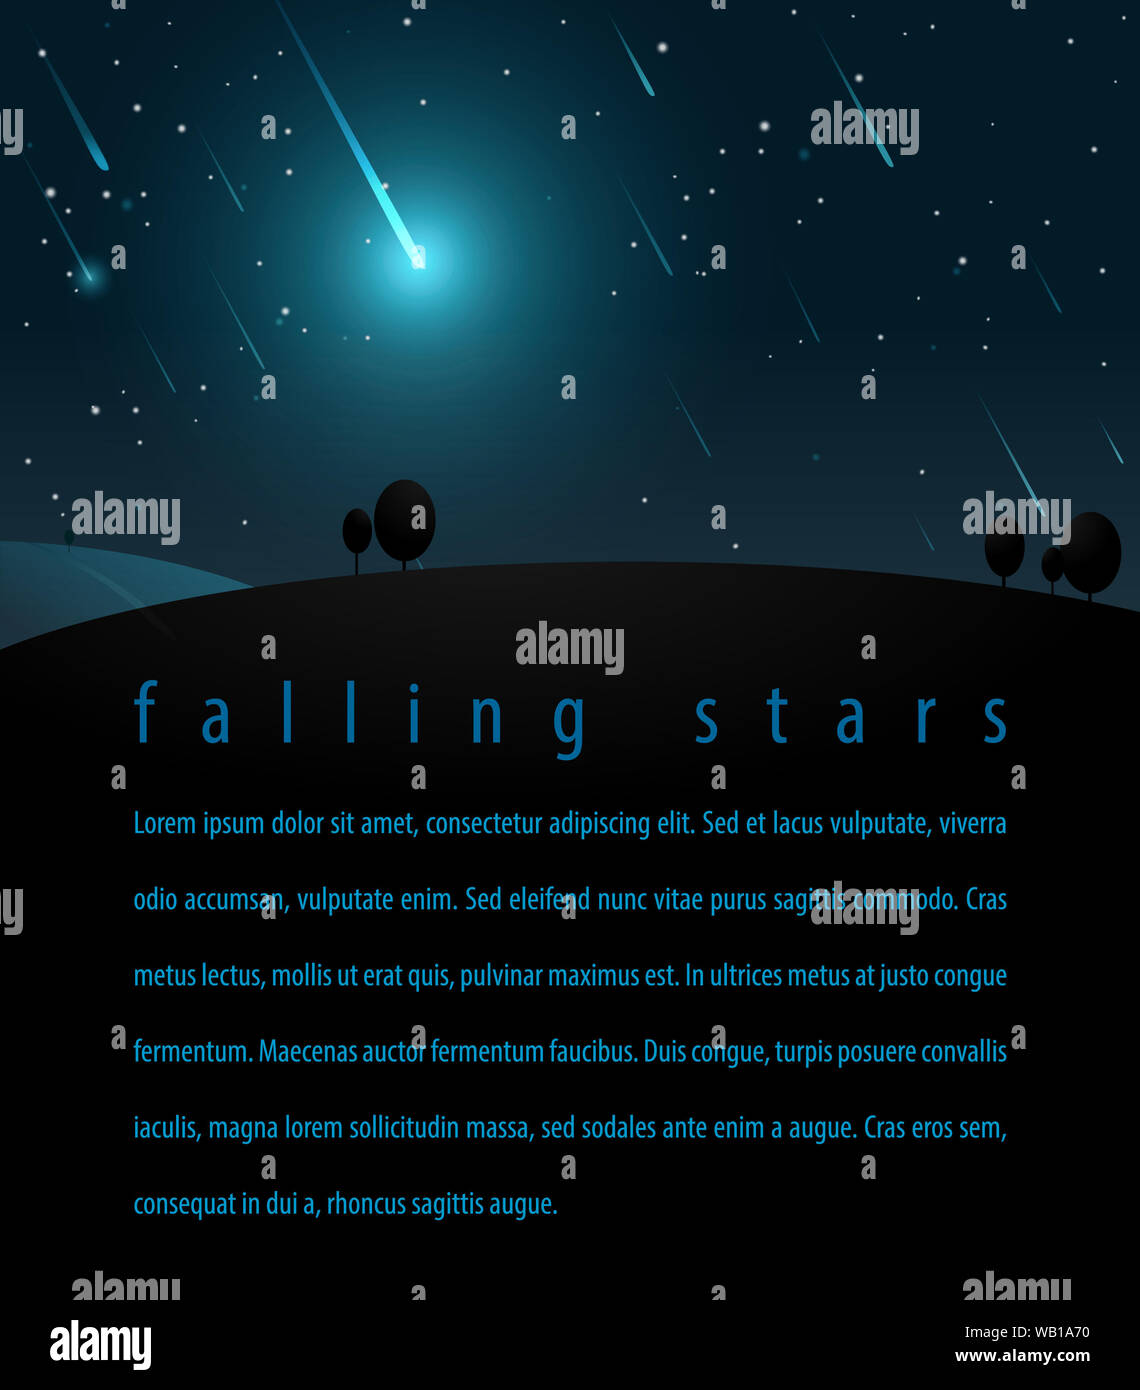 Falling stars in the night starry sky. Vector illustration for posters, flyers, print Webdesign Stock Photo